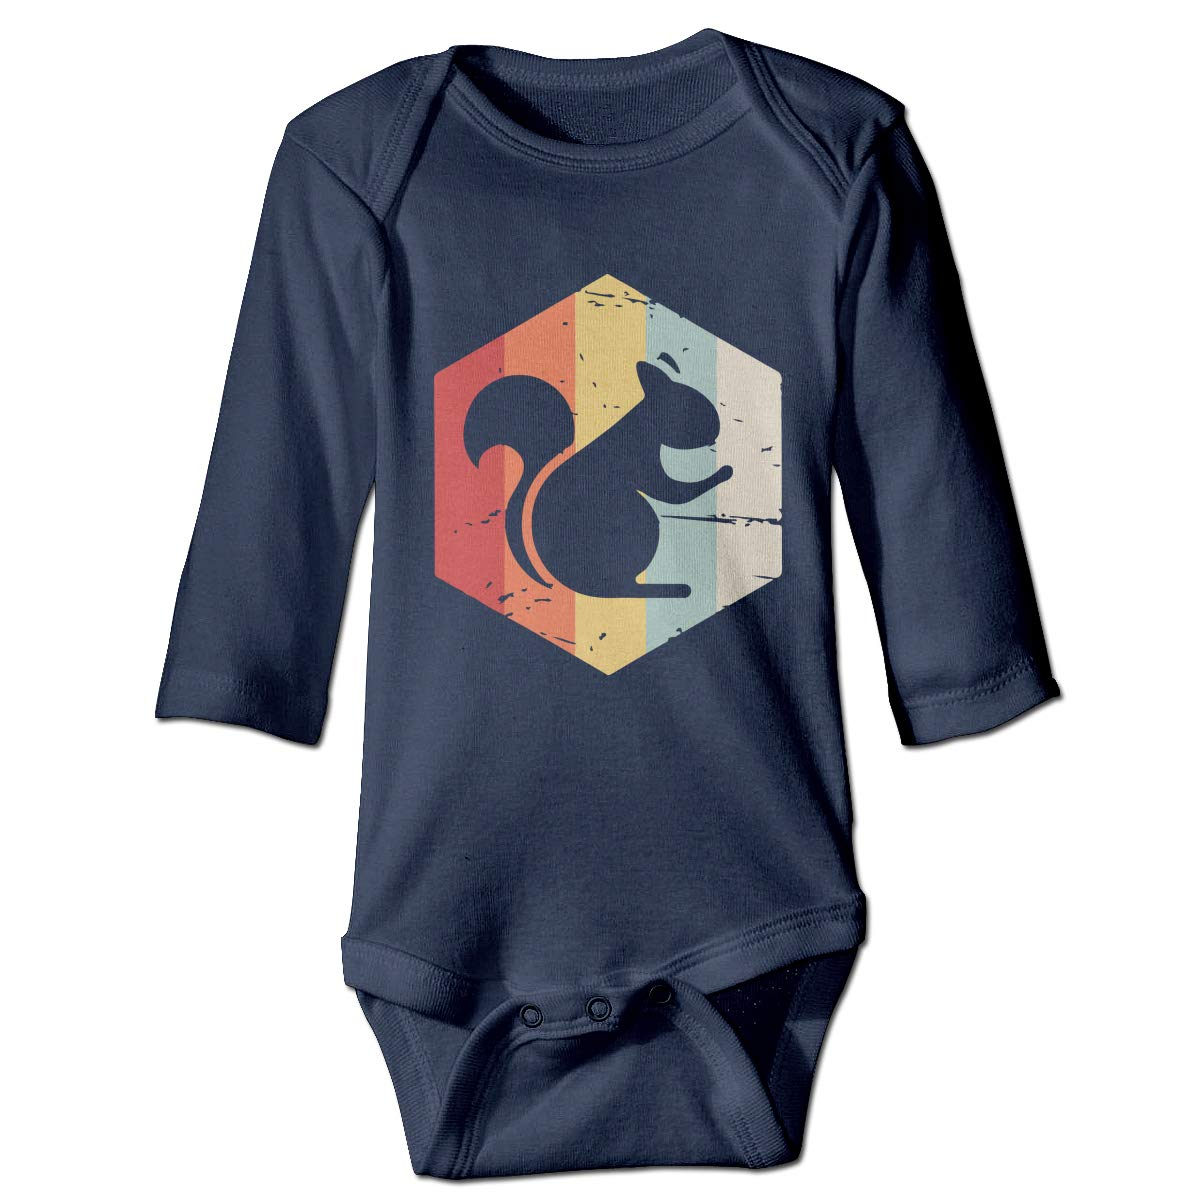 A14UBP Infant Baby Boys Girls Long Sleeve Climb Jumpsuit Retro 70s Squirrel Unisex Button Playsuit Outfit Clothes